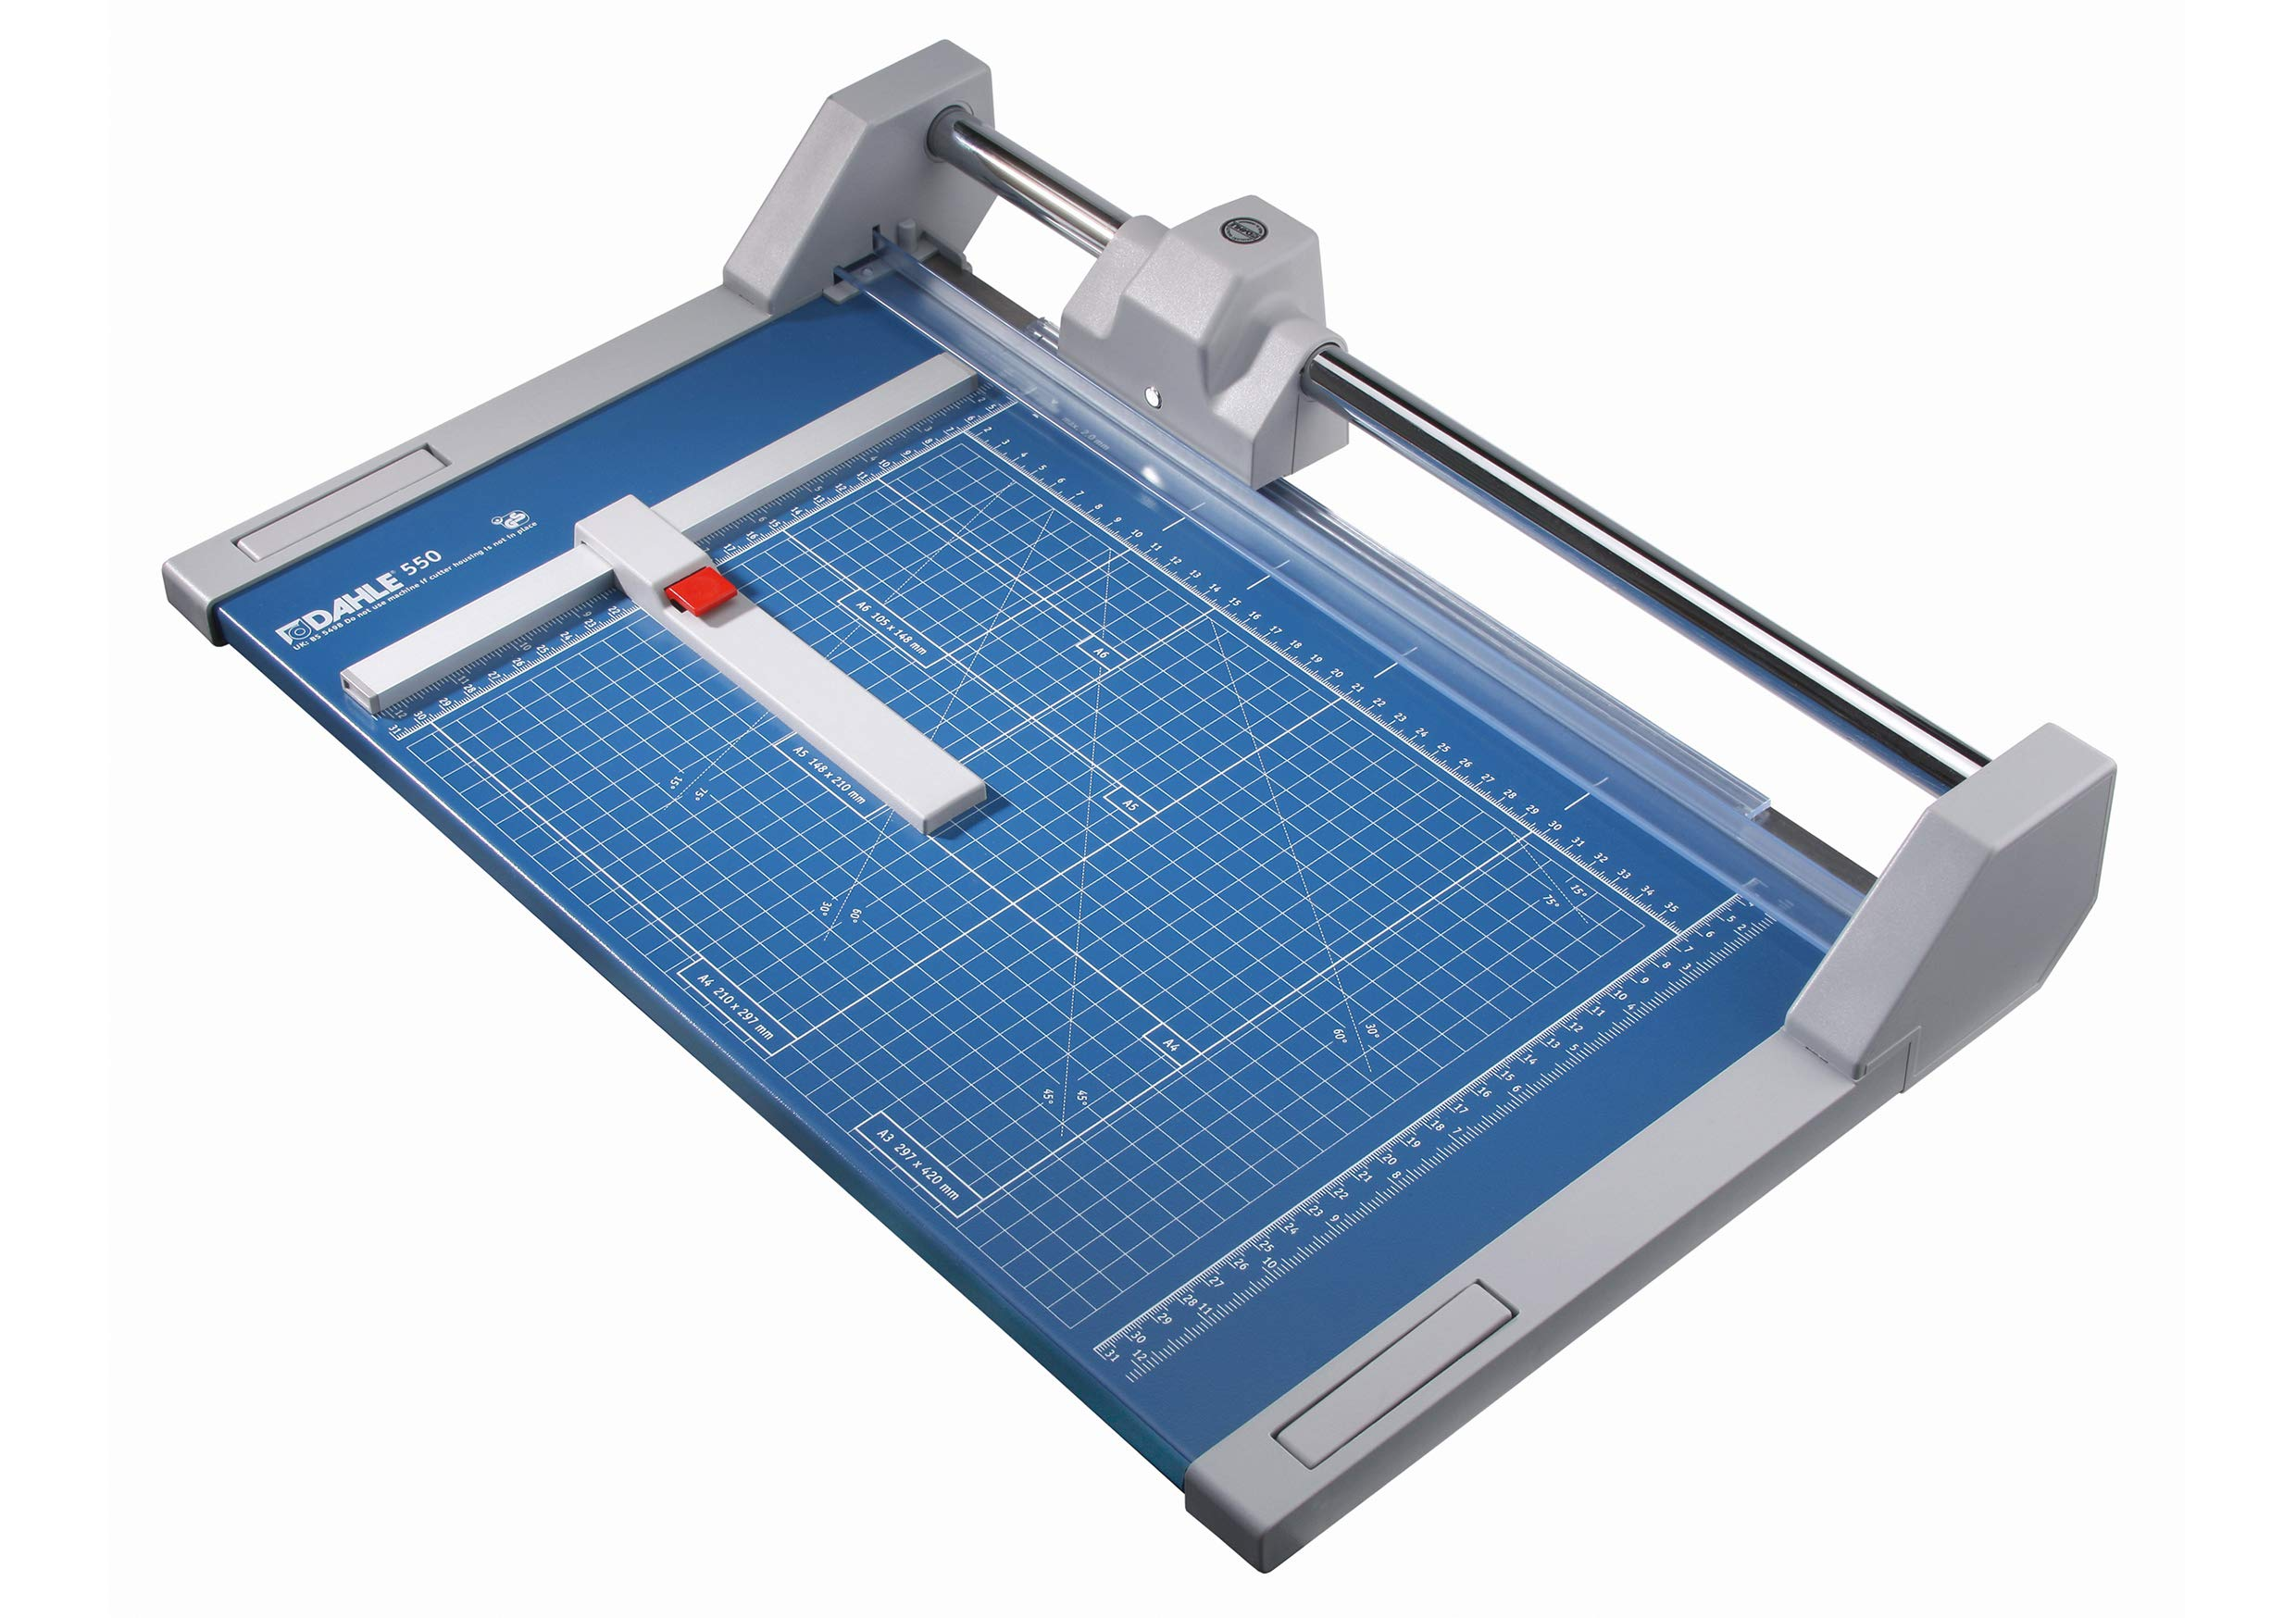 Dahle D550 Professional Trimmer Inch